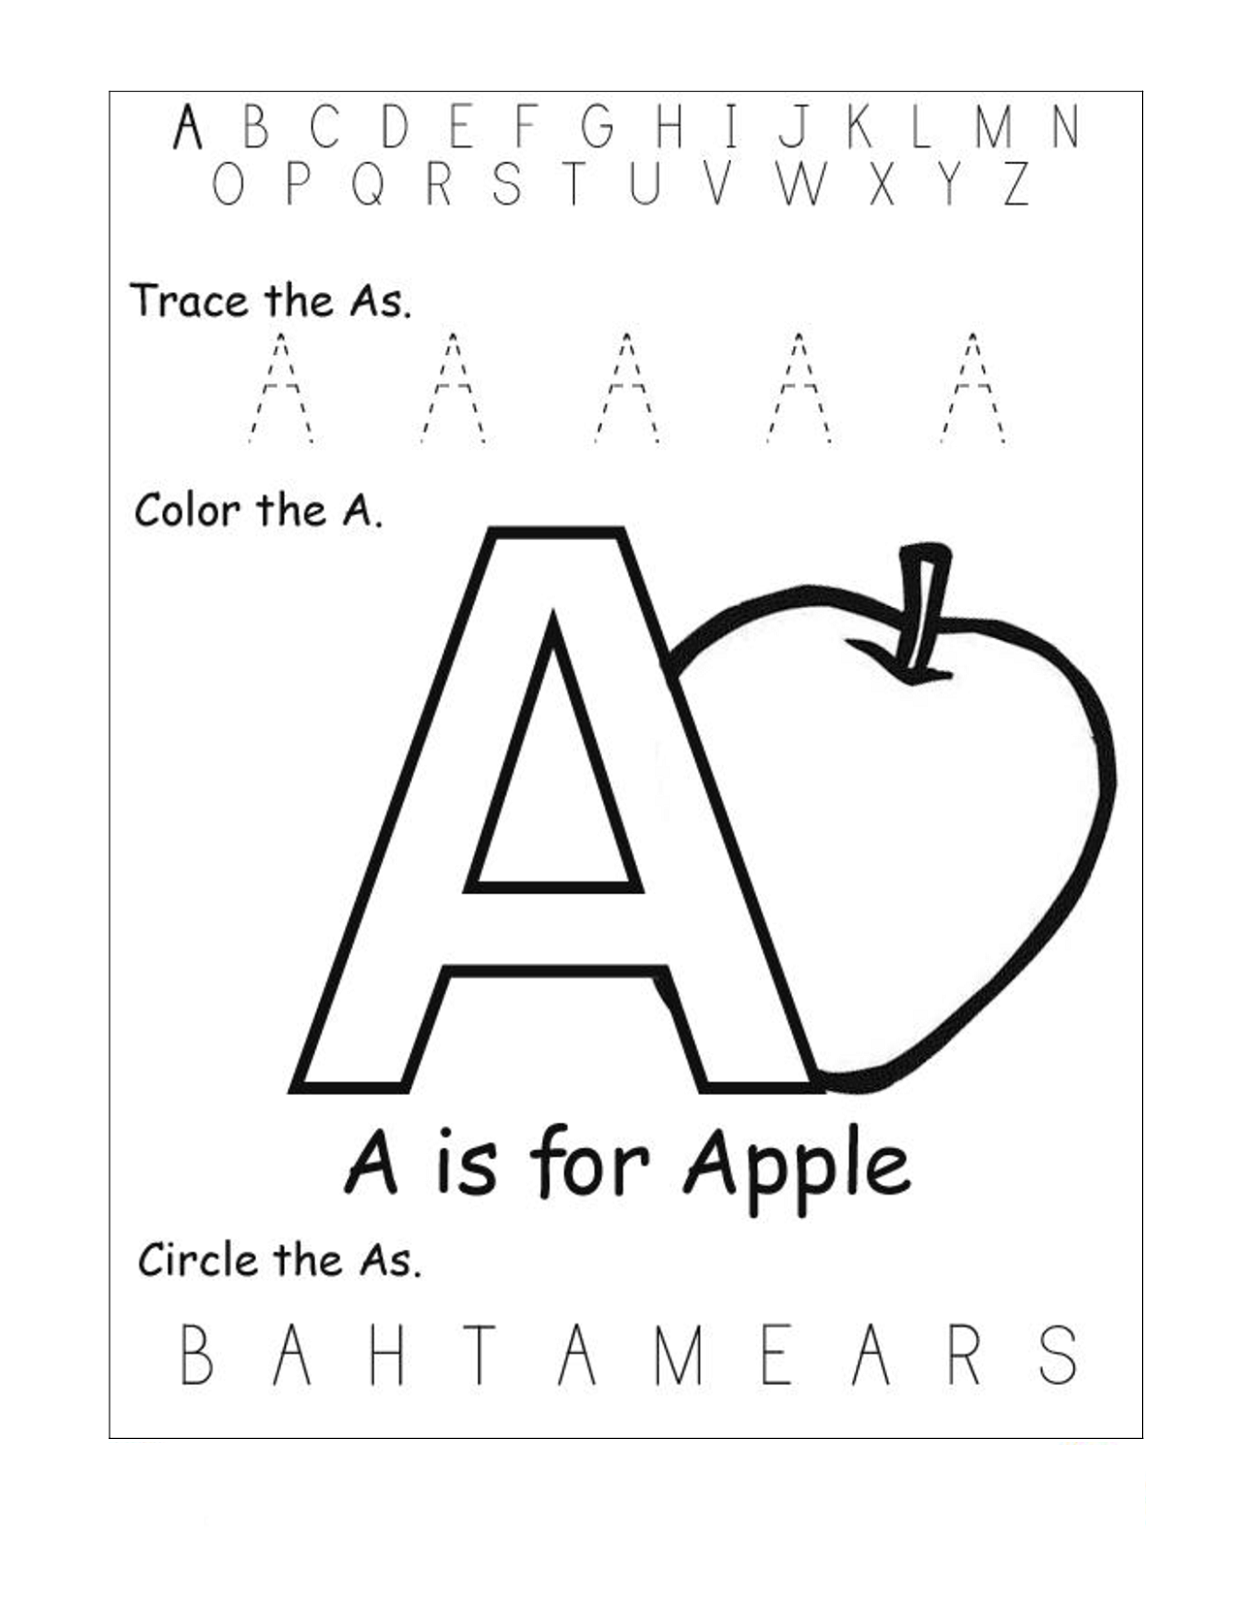 Worksheets Alphabet Worksheets For Pre-k free abc worksheets for pre k activity shelter letter a